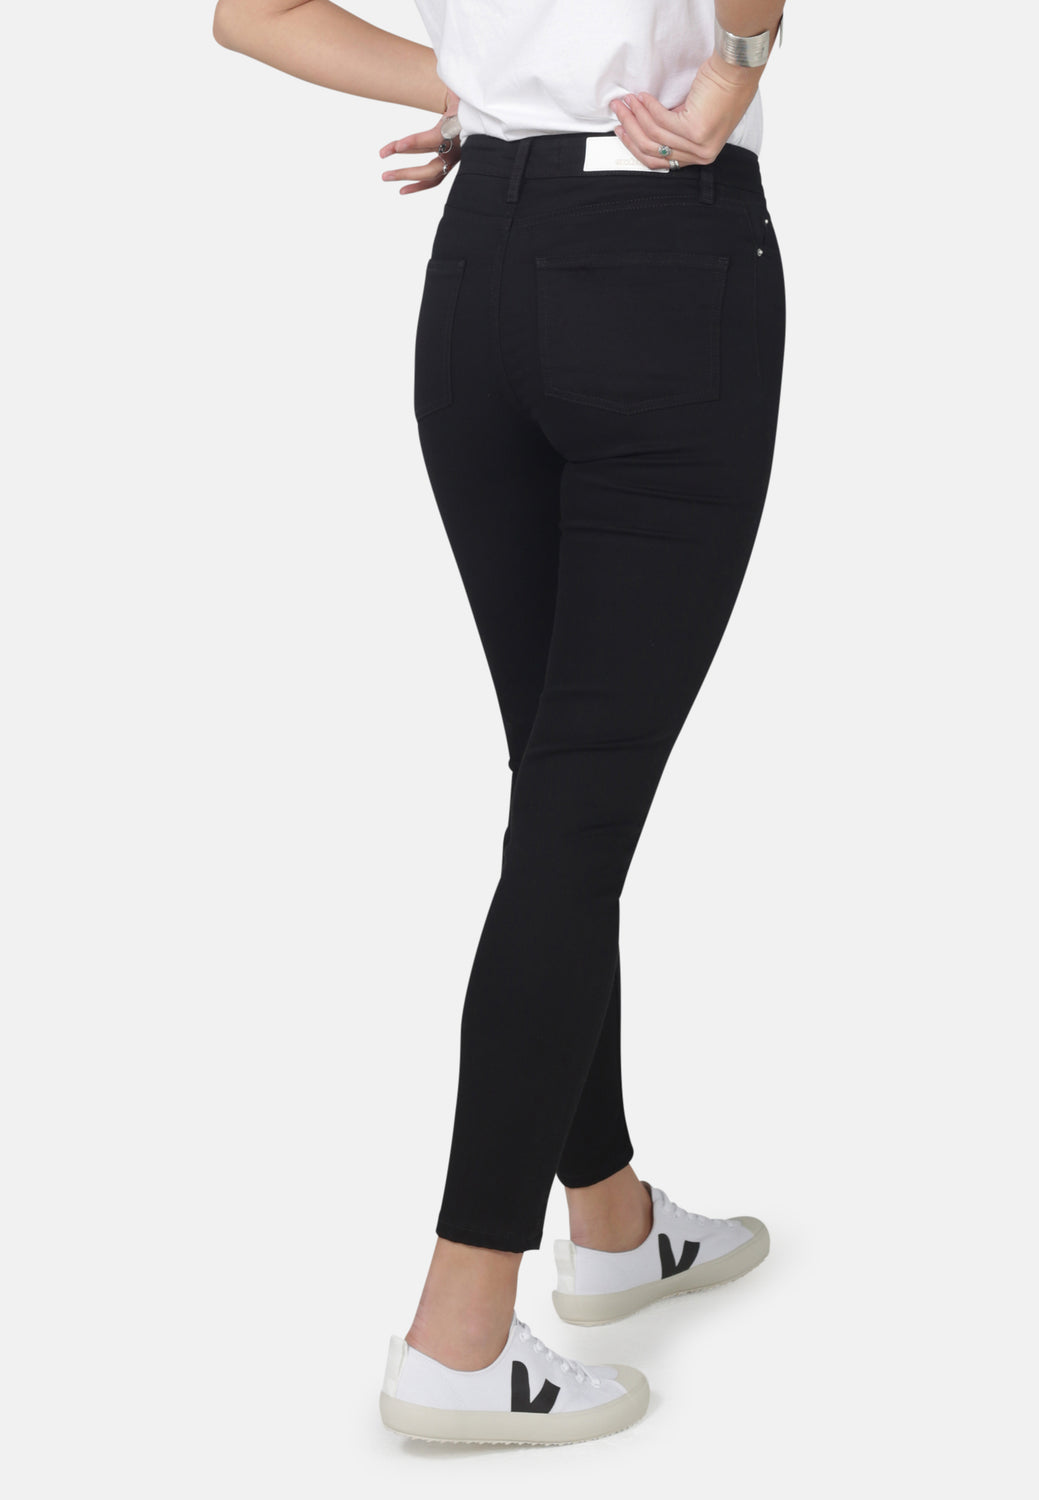 JANE // Recycled Organic Flex Super Skinny High Waist Jeans in Black Jet - Monkee Genes Organic Jeans Denim - Organic Flex Women's Jeans Monkee Genes Official  Monkee Genes Official